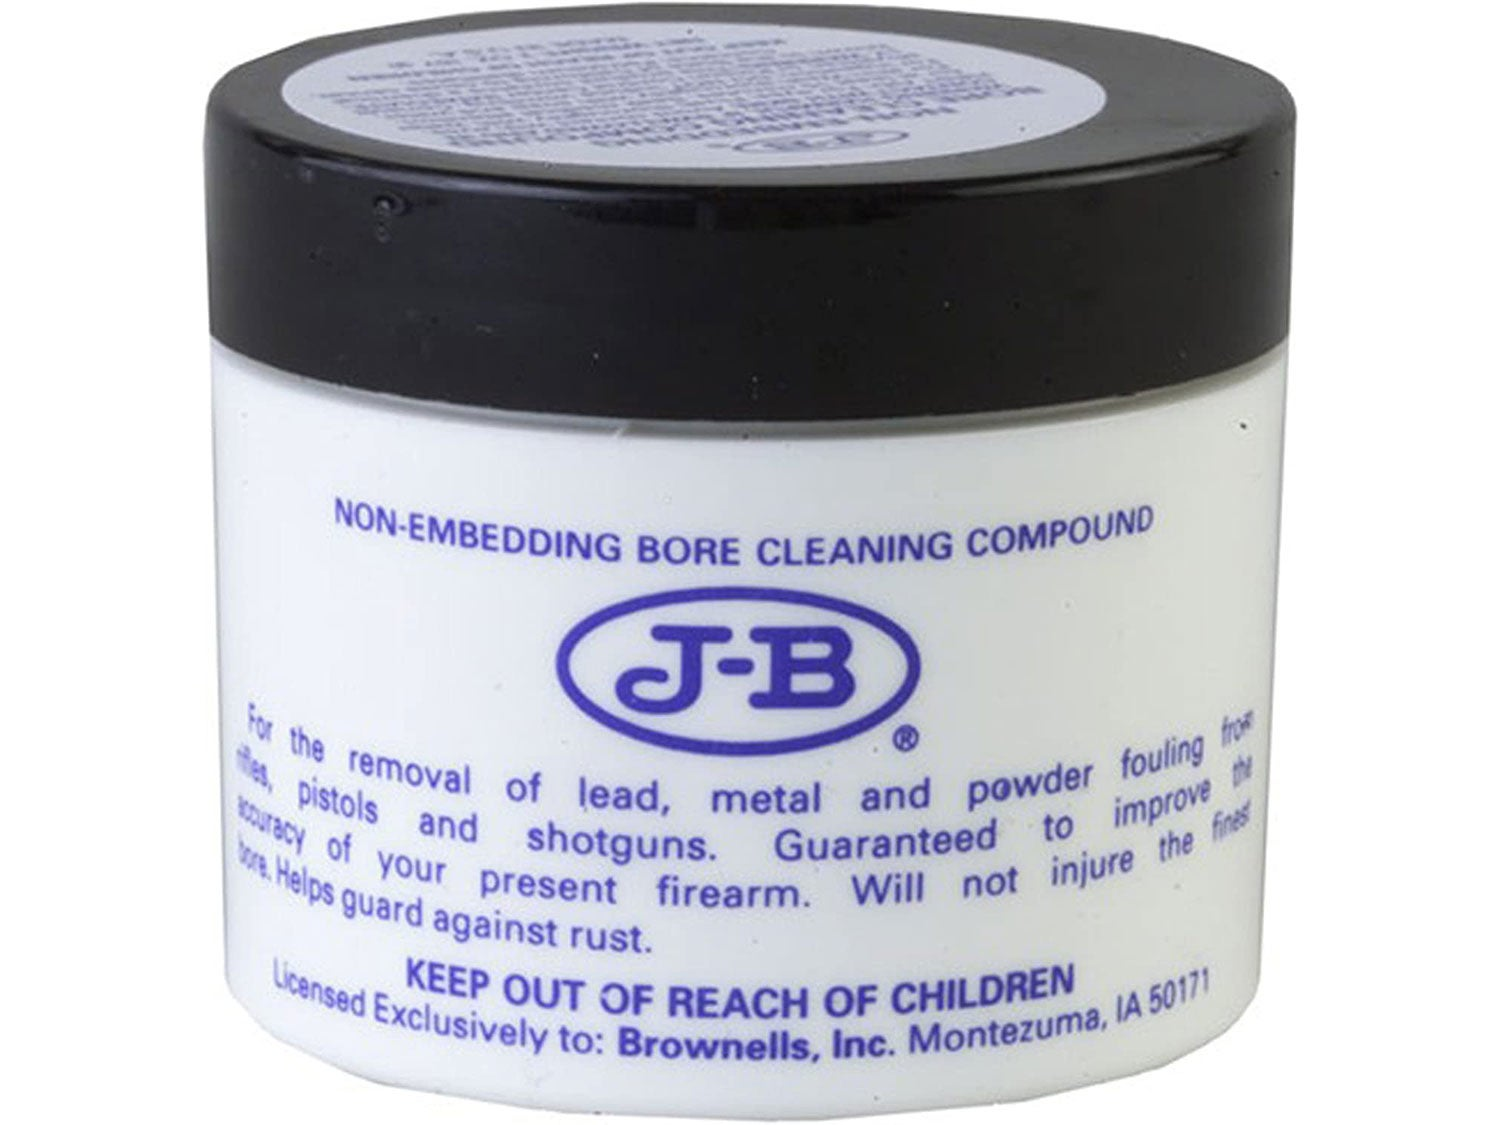 A tub of J-B bore cleaning compound.